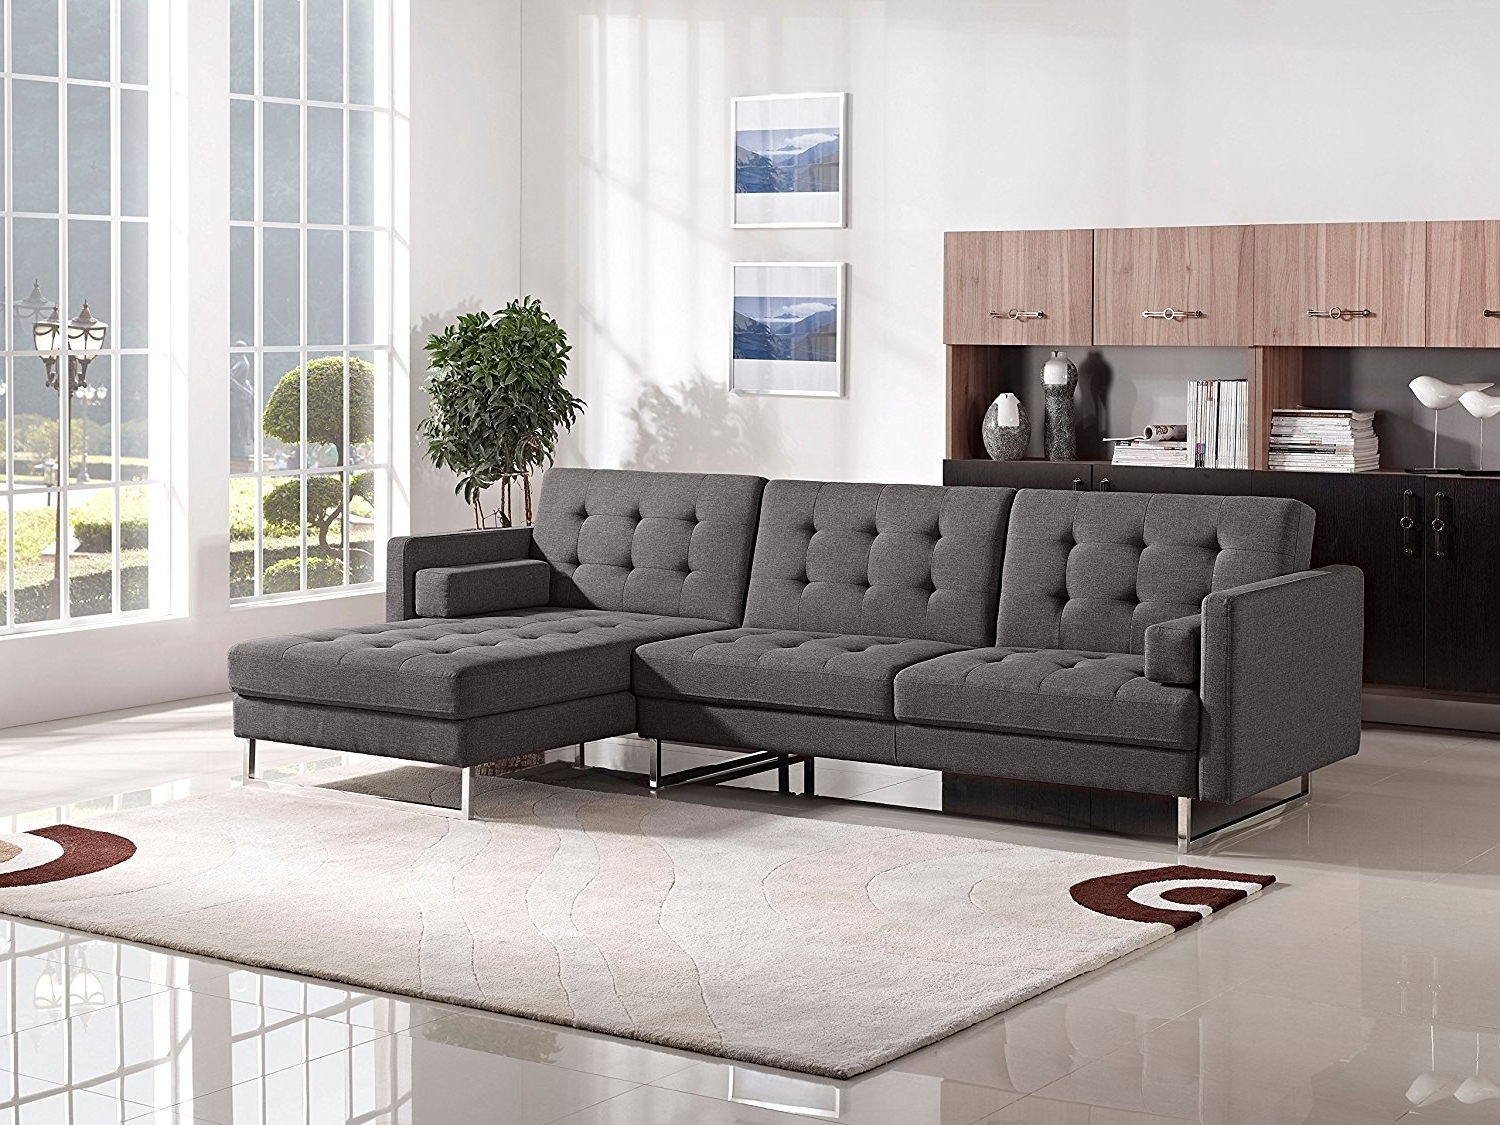 Tufted Sectional Sofas With Chaise Pertaining To Current Tufted Sectional Sofa With Chaise – Visionexchange (View 8 of 15)